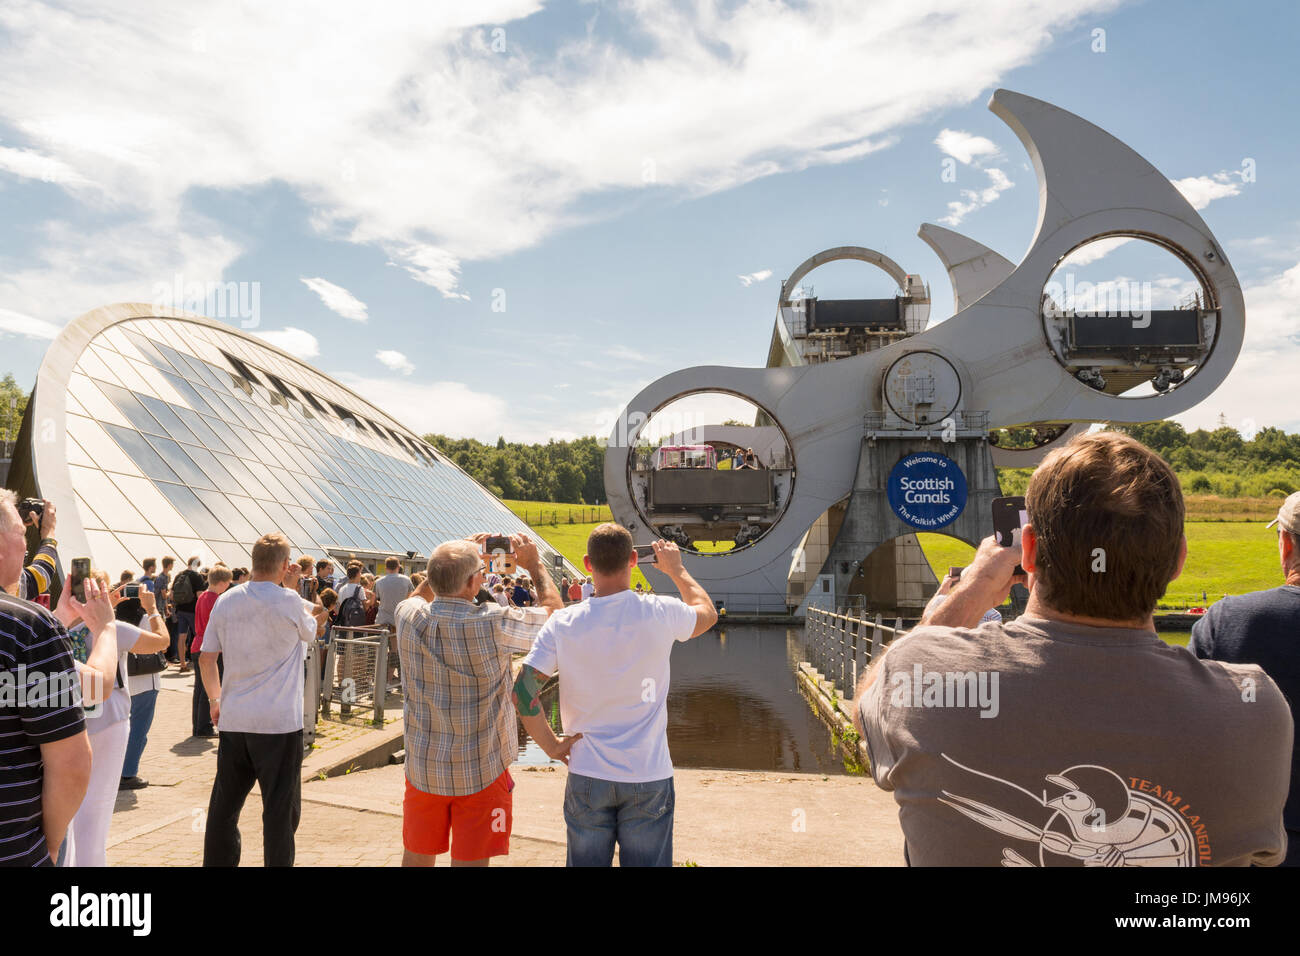 The Falkirk Wheel - people taking photographs of Falkirk Wheel turning rotating, Scotland - Stock Image